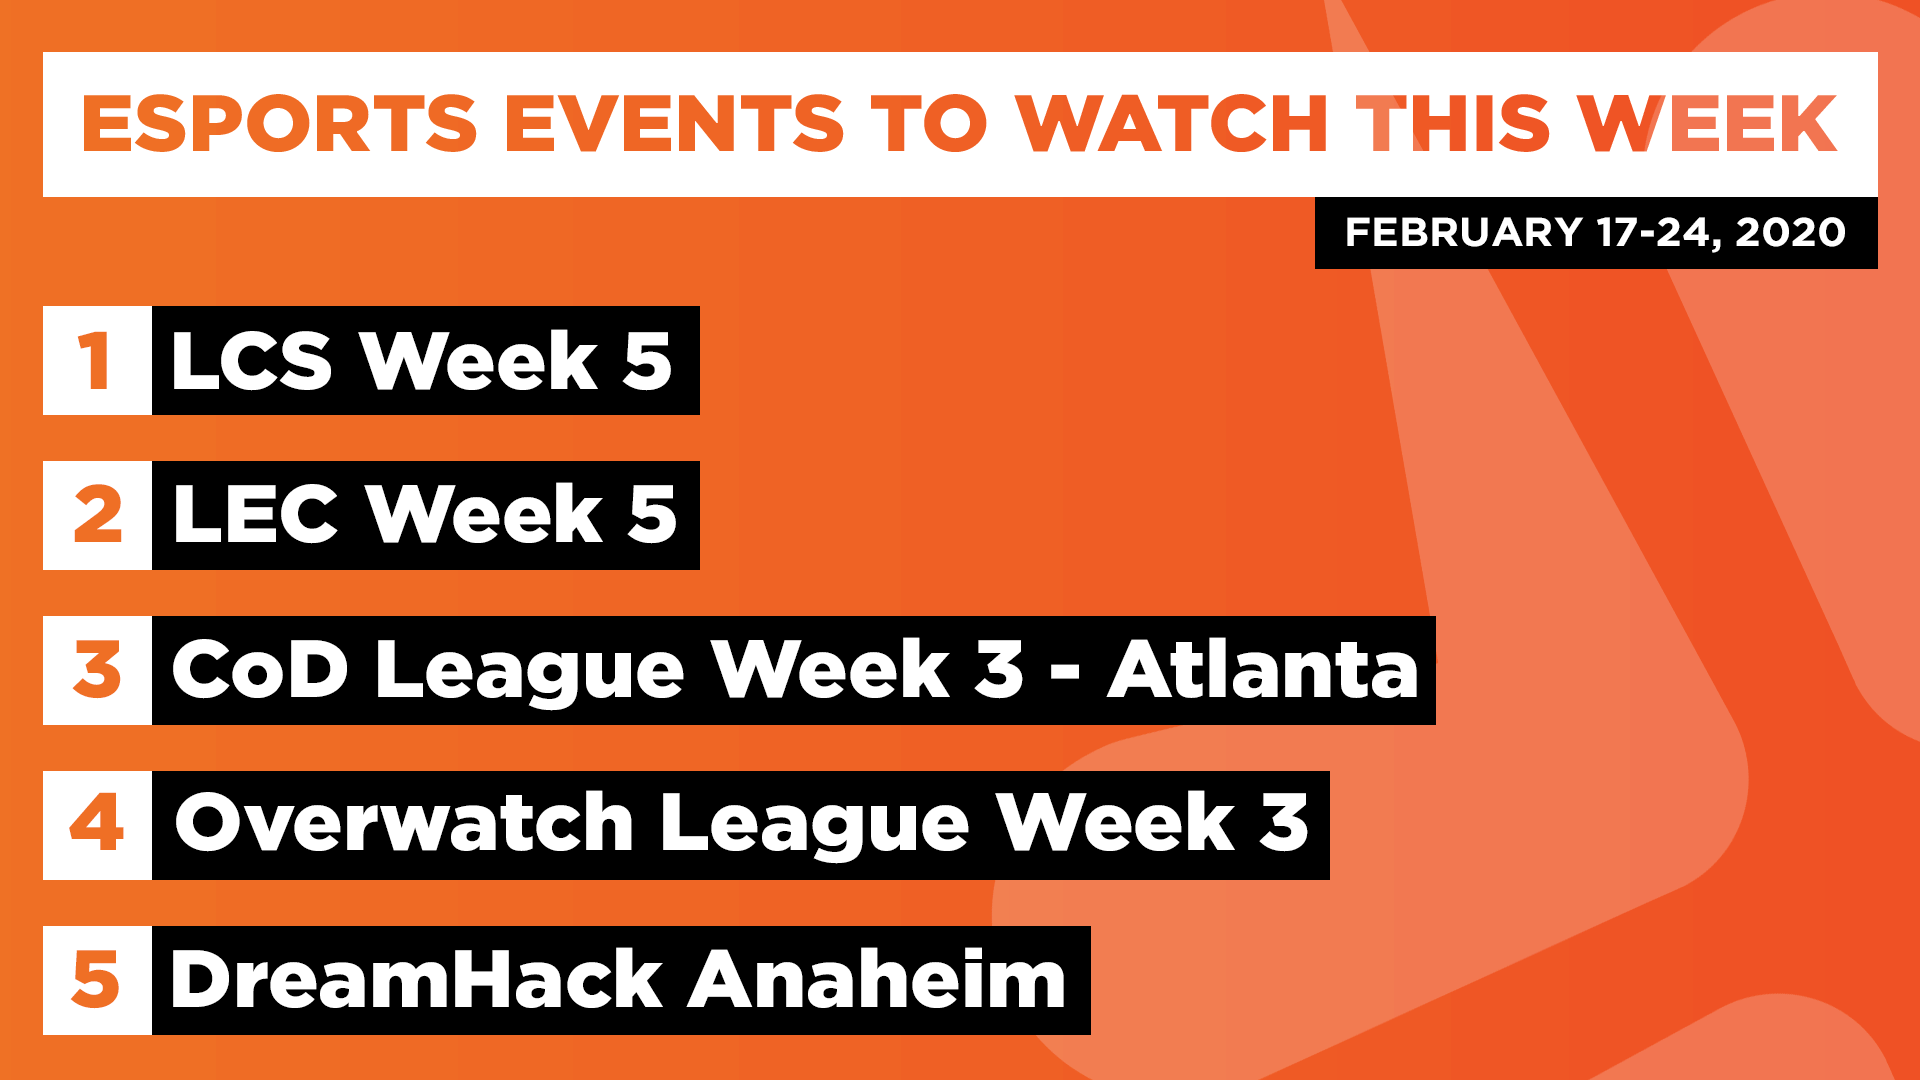 Esports Events to Watch This Week (Feb 17-24, 2020)